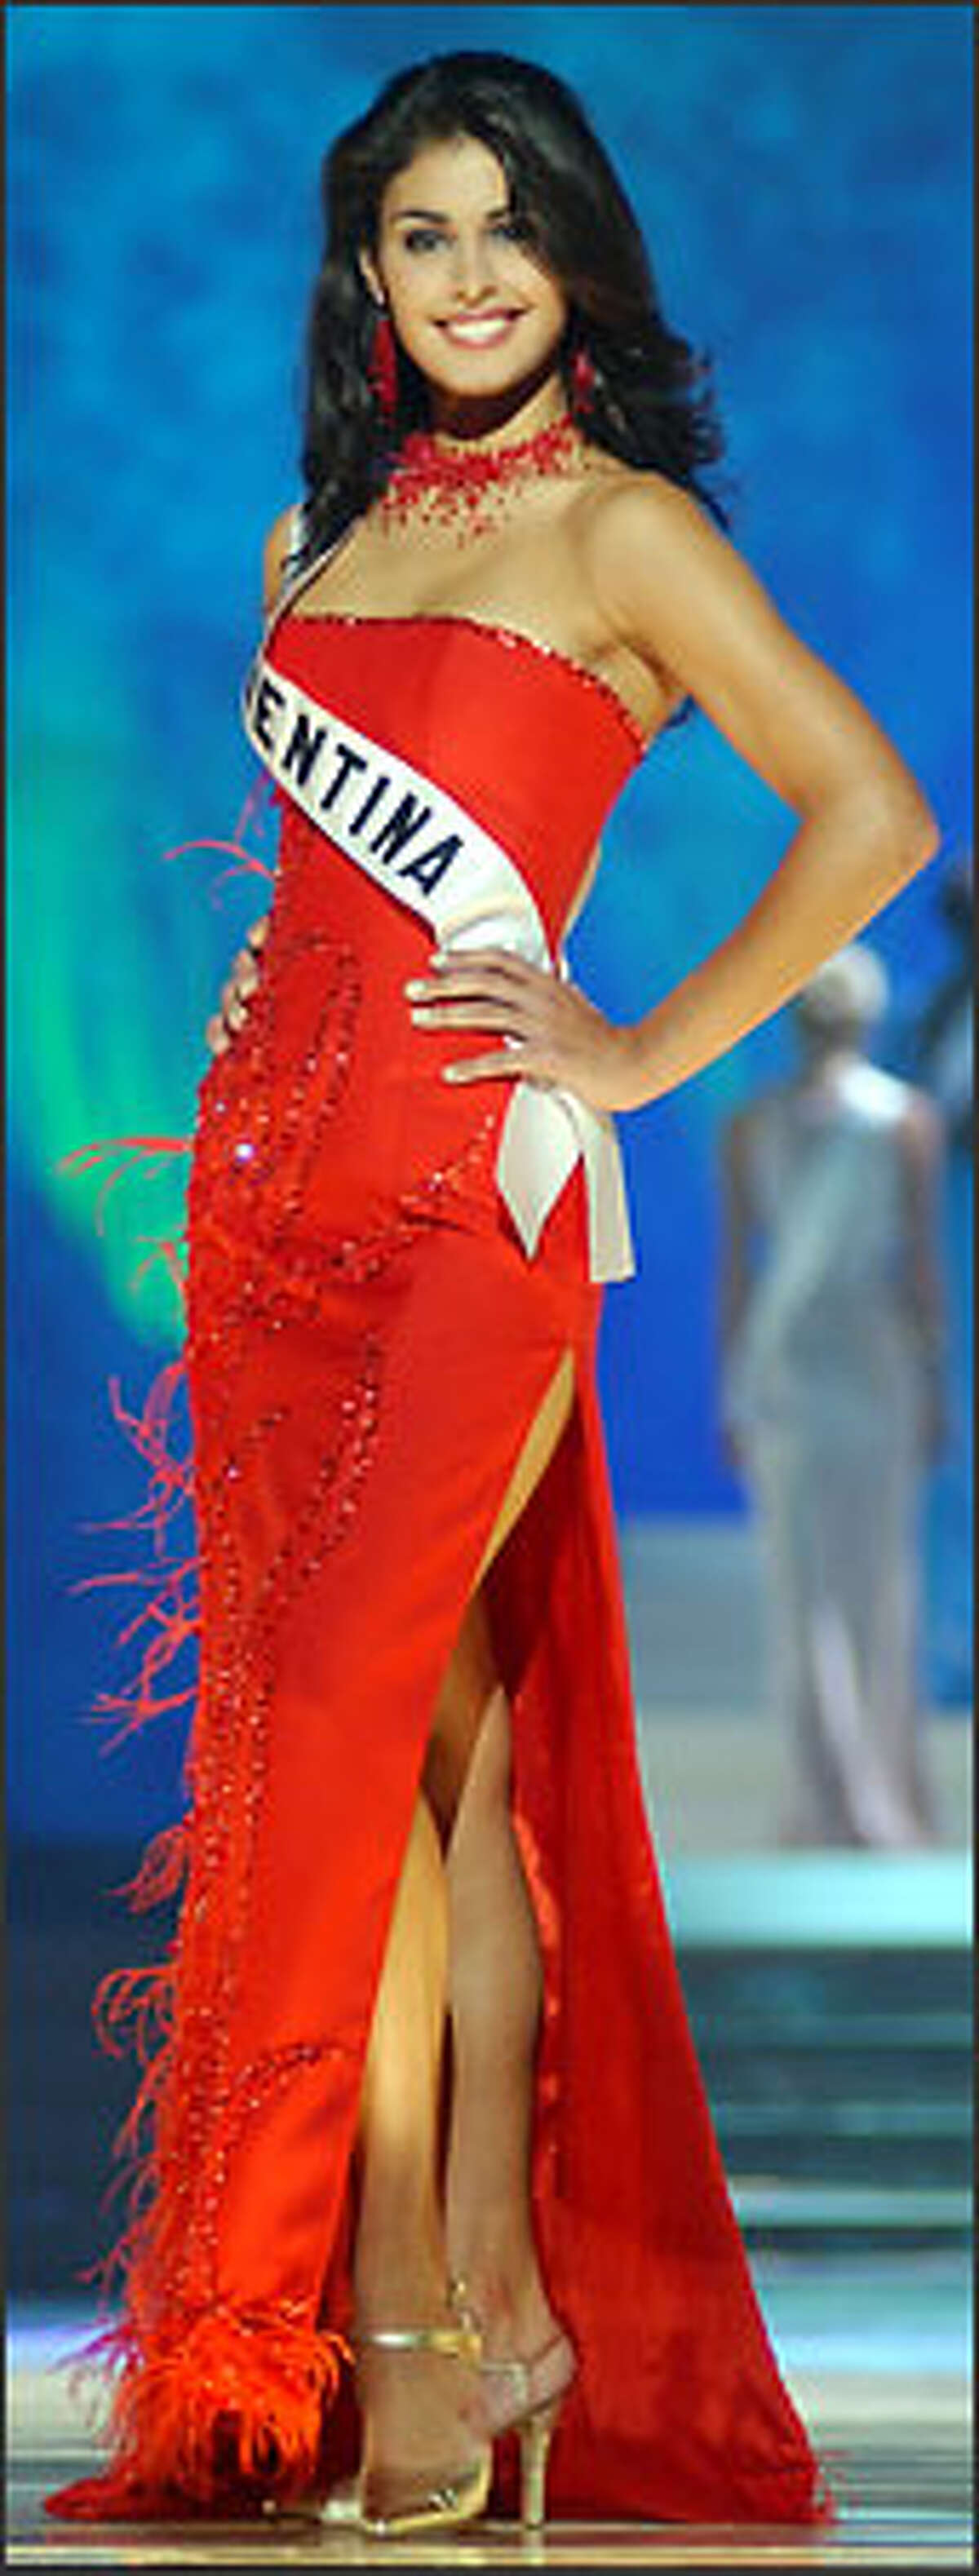 Laura Romero, Miss Argentina 2003, from La Plata, competes May 29, 2003 in her choice of evening gown during the 2003 Miss Universe Presentation Show at the Panama Canal Village Convention Center in Panama City, Panama. During the Presentation Show, each Miss Universe delegate is judged by a preliminary panel of distinguished judges in three categories. These categories consist of individual interview, swimsuit competition and evening gown competition. The scores are tallied and the Top 15 delegates will be announced during the LIVE broadcast of the 52nd annual Miss Universe competition on Tuesday, June 3, 2003 from Panama City, Panama on NBC at 9:00 PM (ET)/8 PM (CT) (delayed PT). ho/MISS UNIVERSE L.P., LLLP